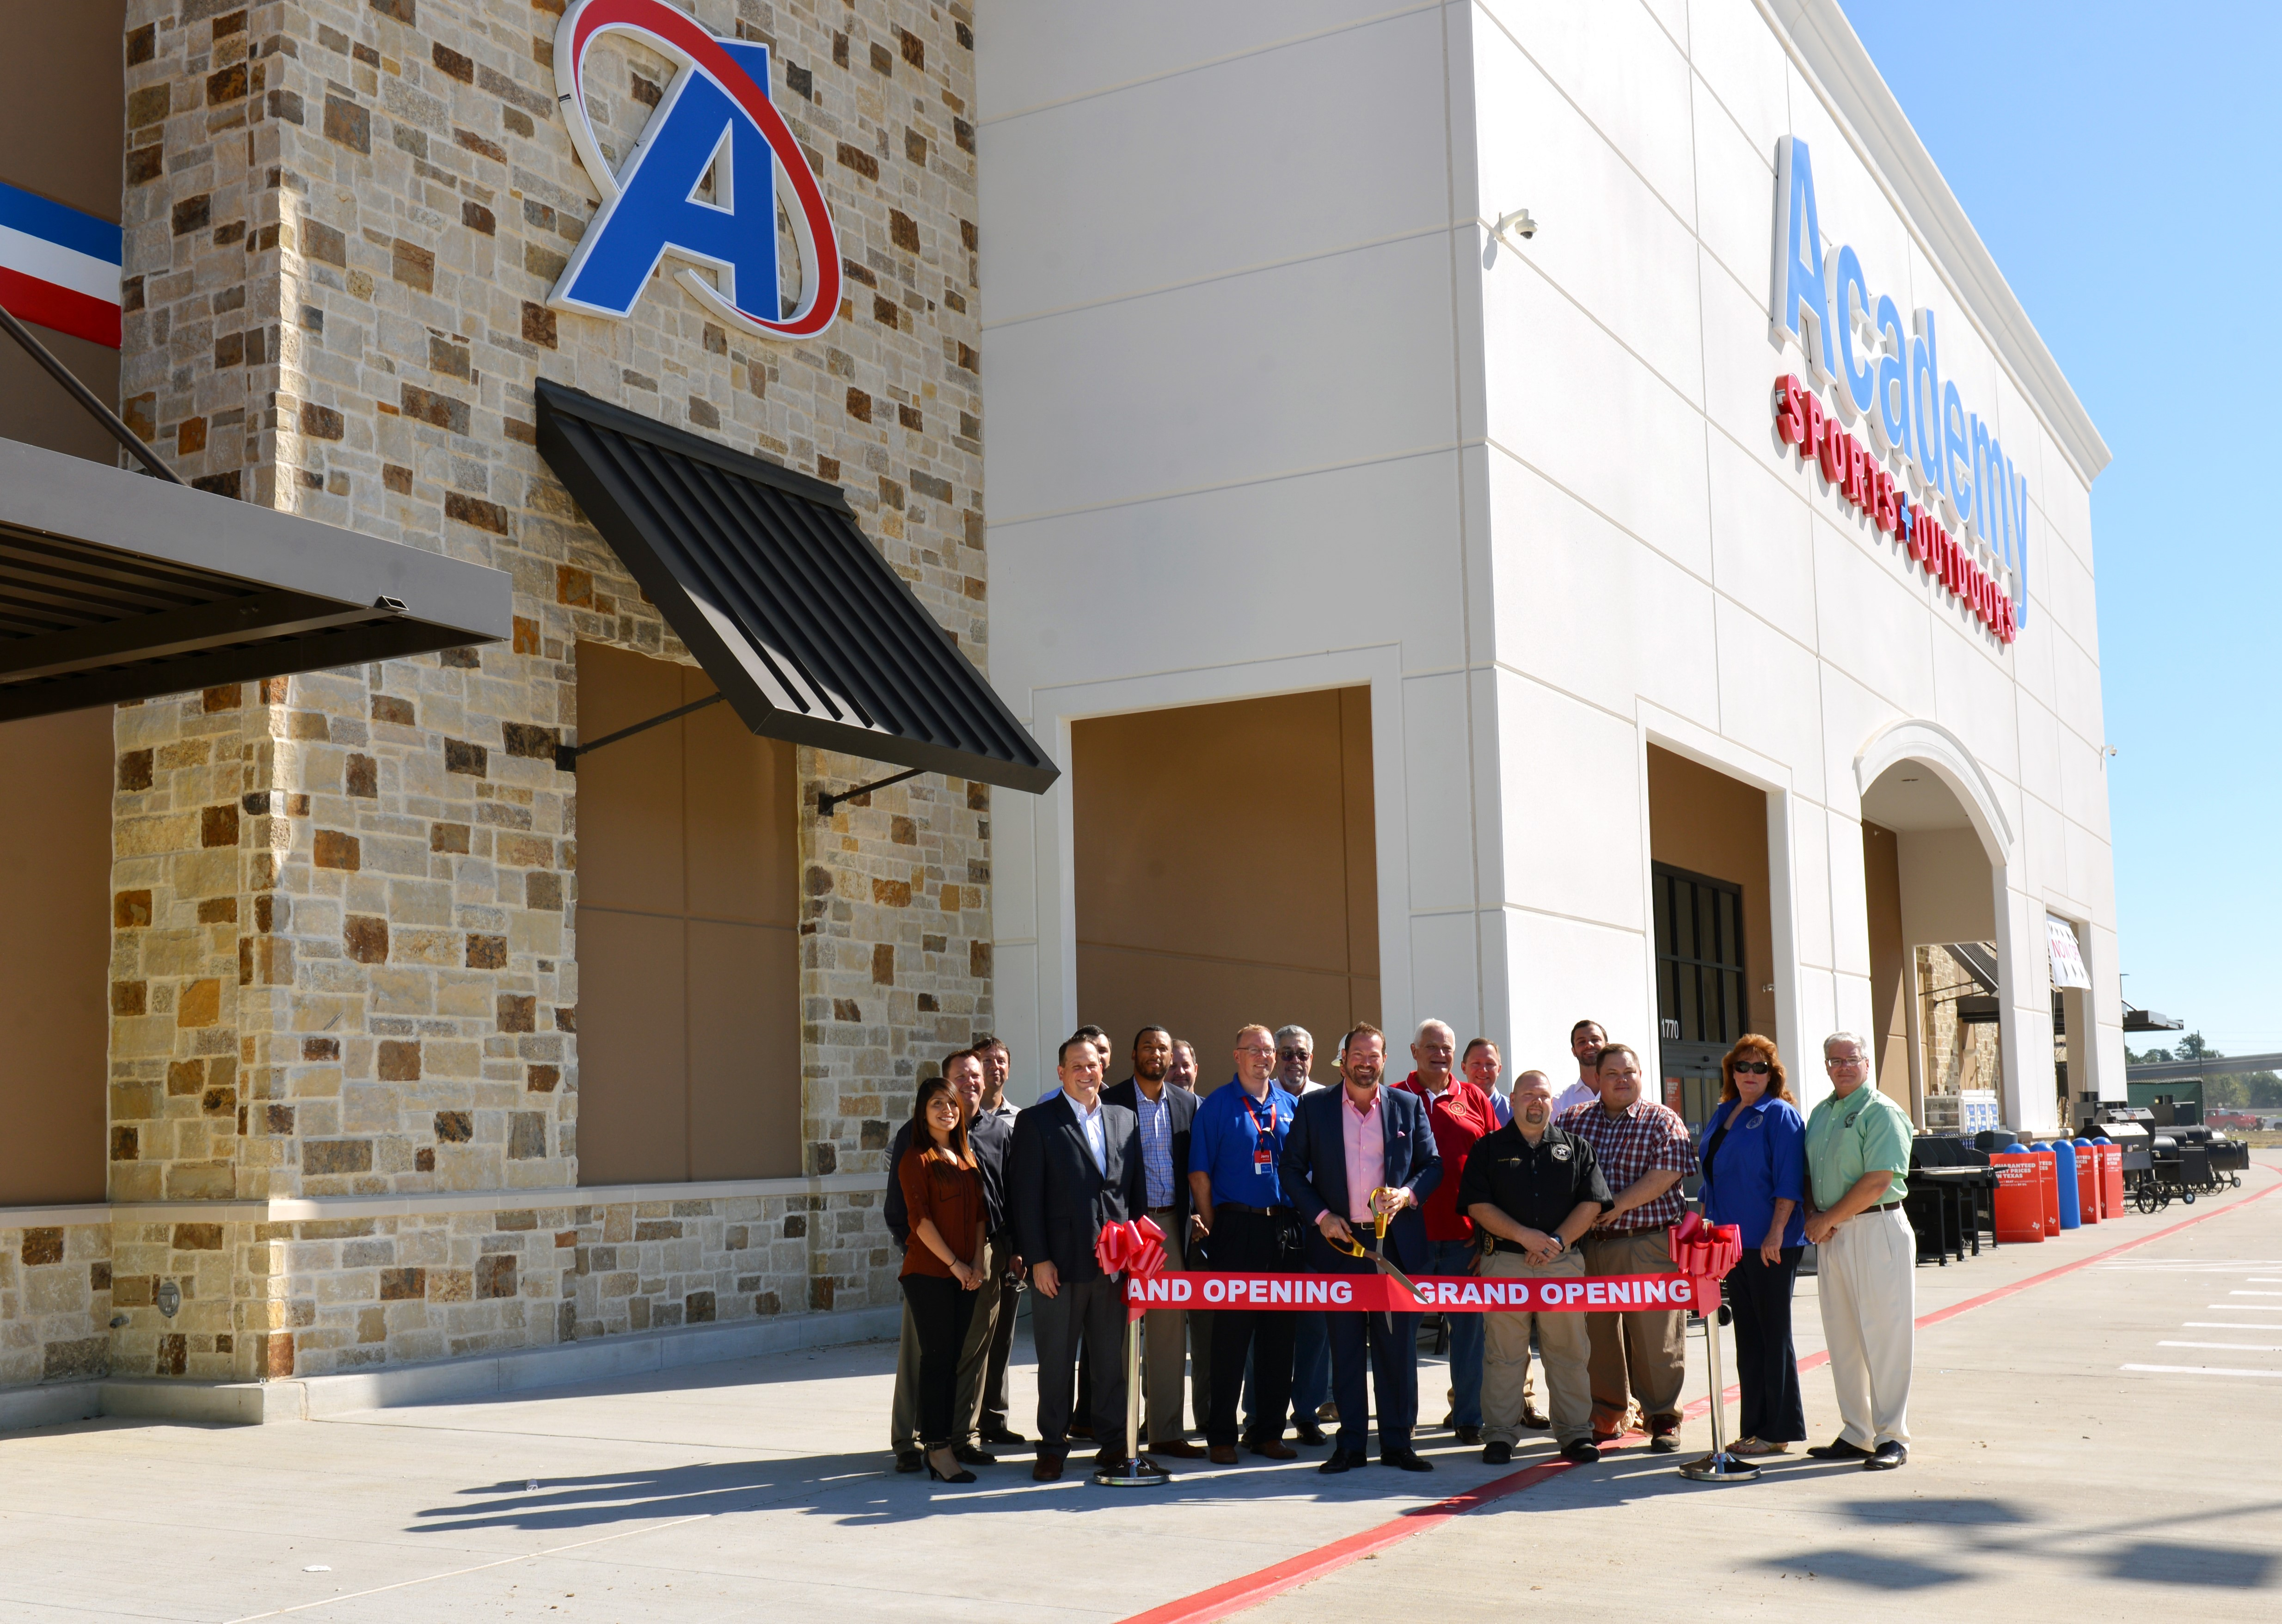 Academy Sports + Outdoors Grand Opening Valley Ranch Town Center